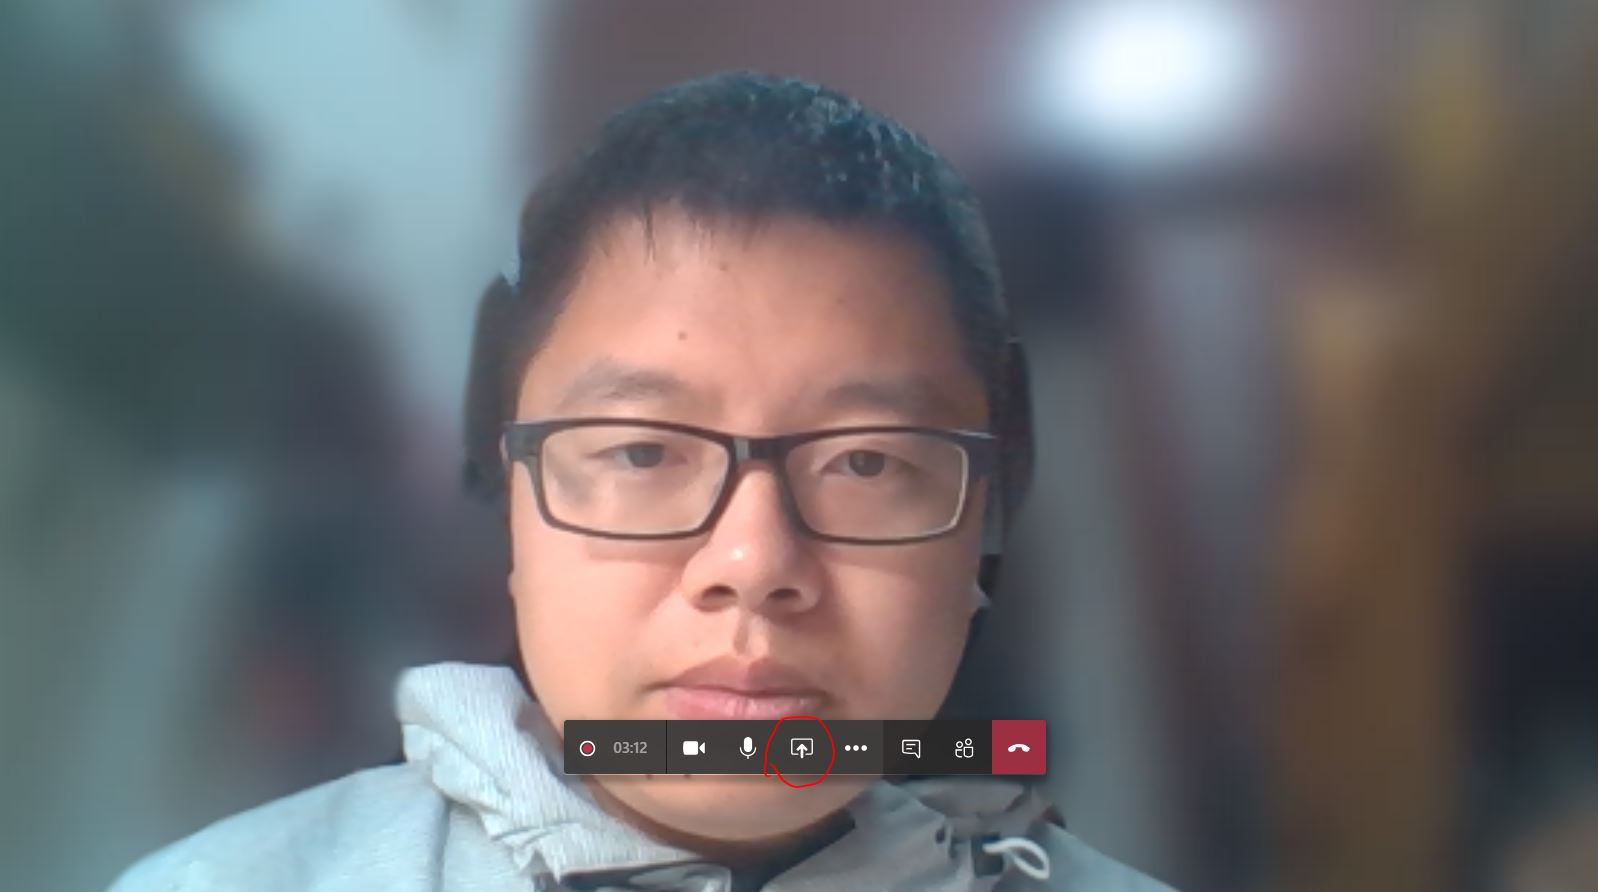 A person wearing glasses and looking at the camera  Description automatically generated